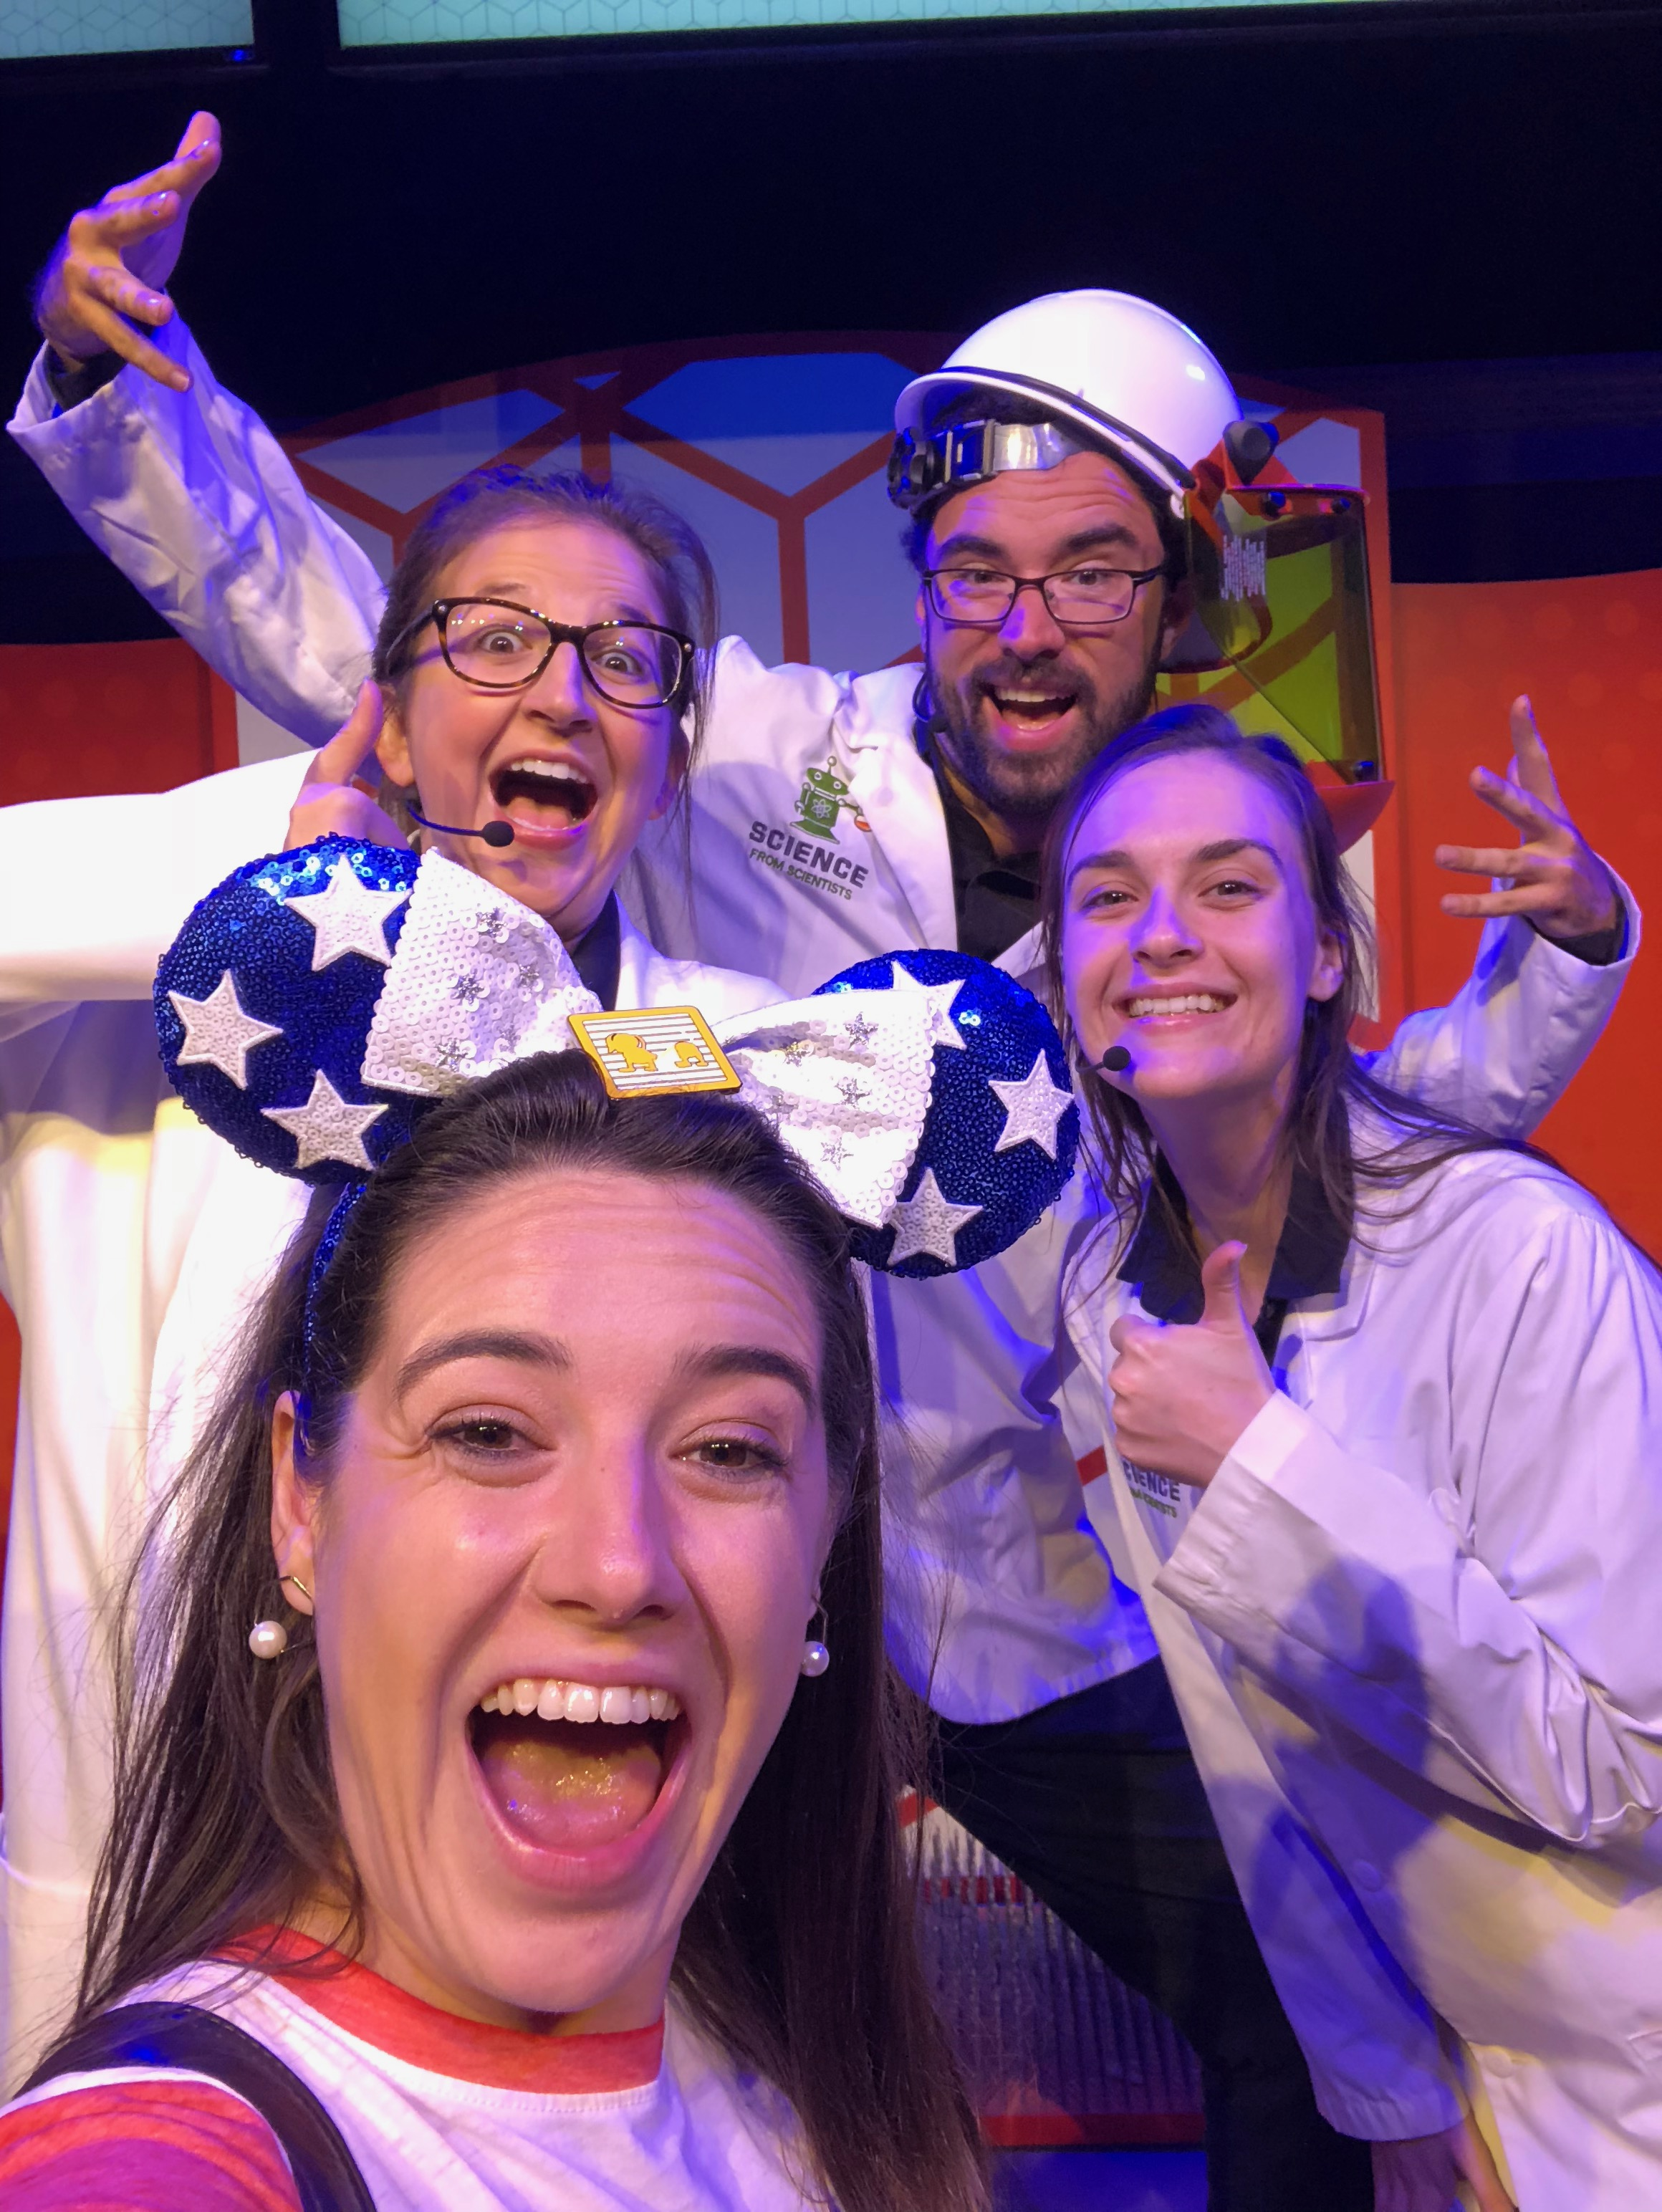 Sarah taking a selfie with the cast of SpectacuLab, who are all dressed in lab coats